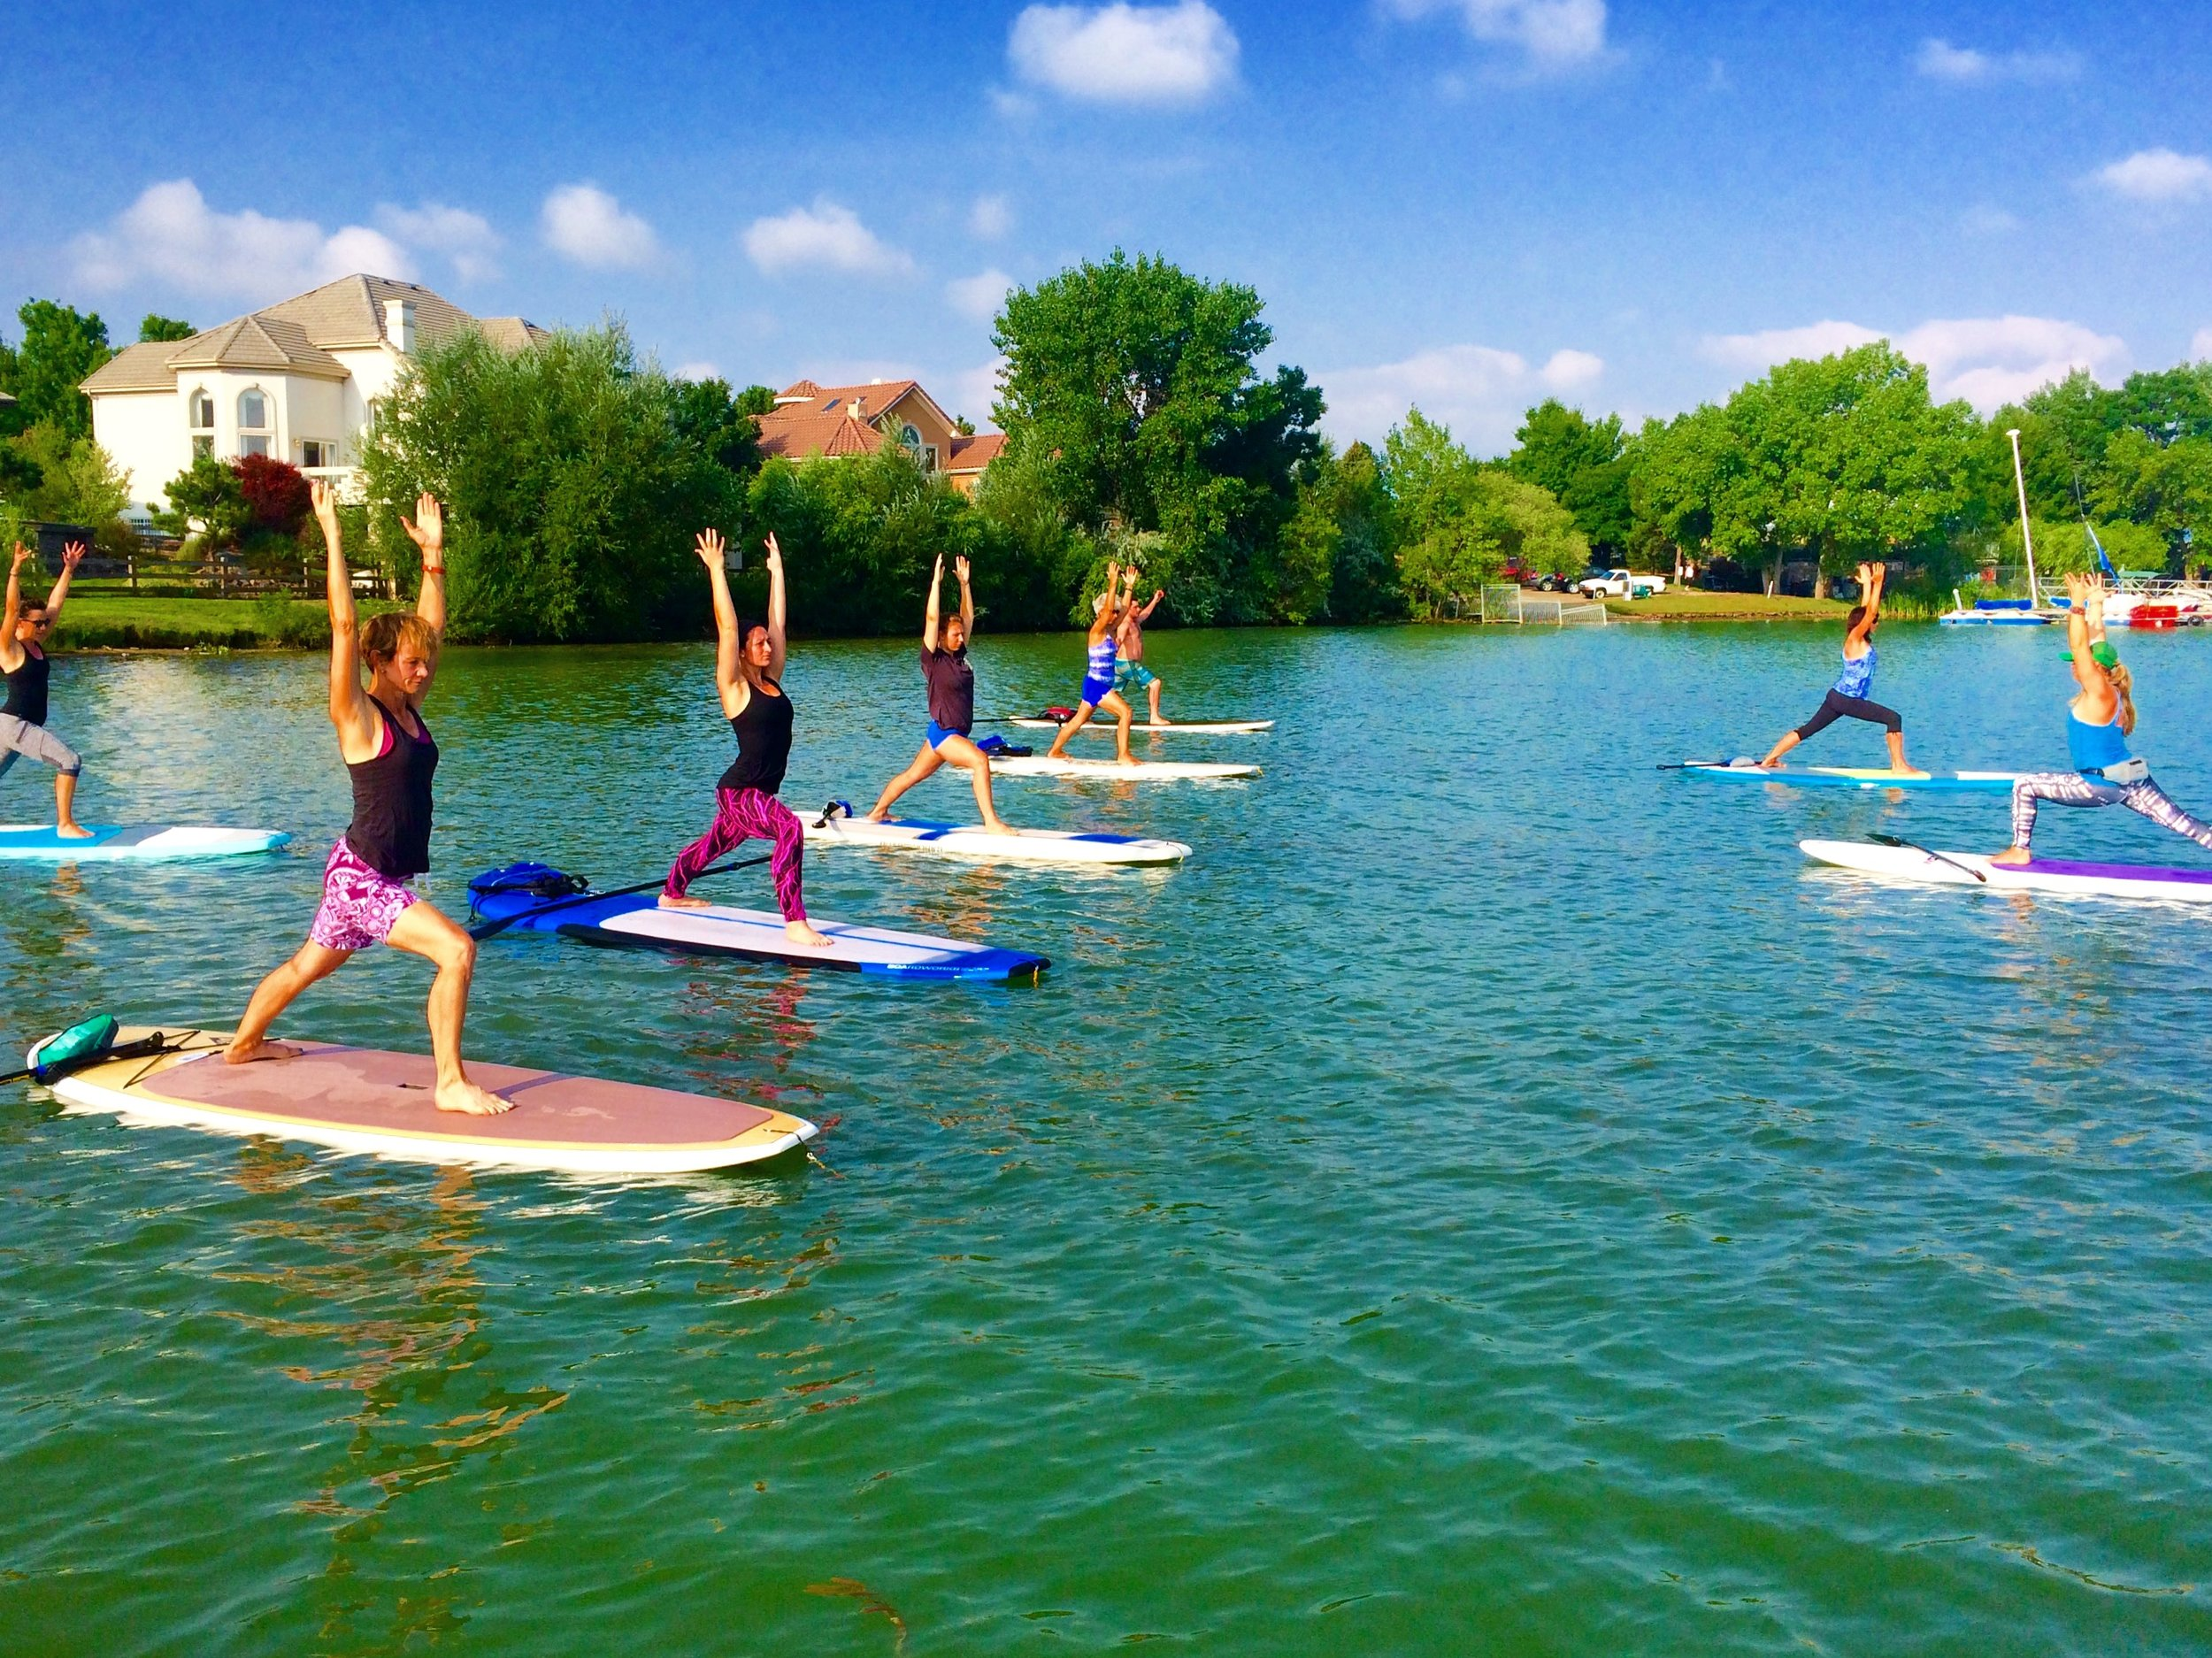 SUP + SUP Yoga Workshops - Join us on the water for a fluid, fun, and dynamic morning of SUP Yoga and paddling.January 12th: 8:00-11:30am, Wailua River, Kauai, Hawaii***Weekly classes on Kauai coming in January of 2019!